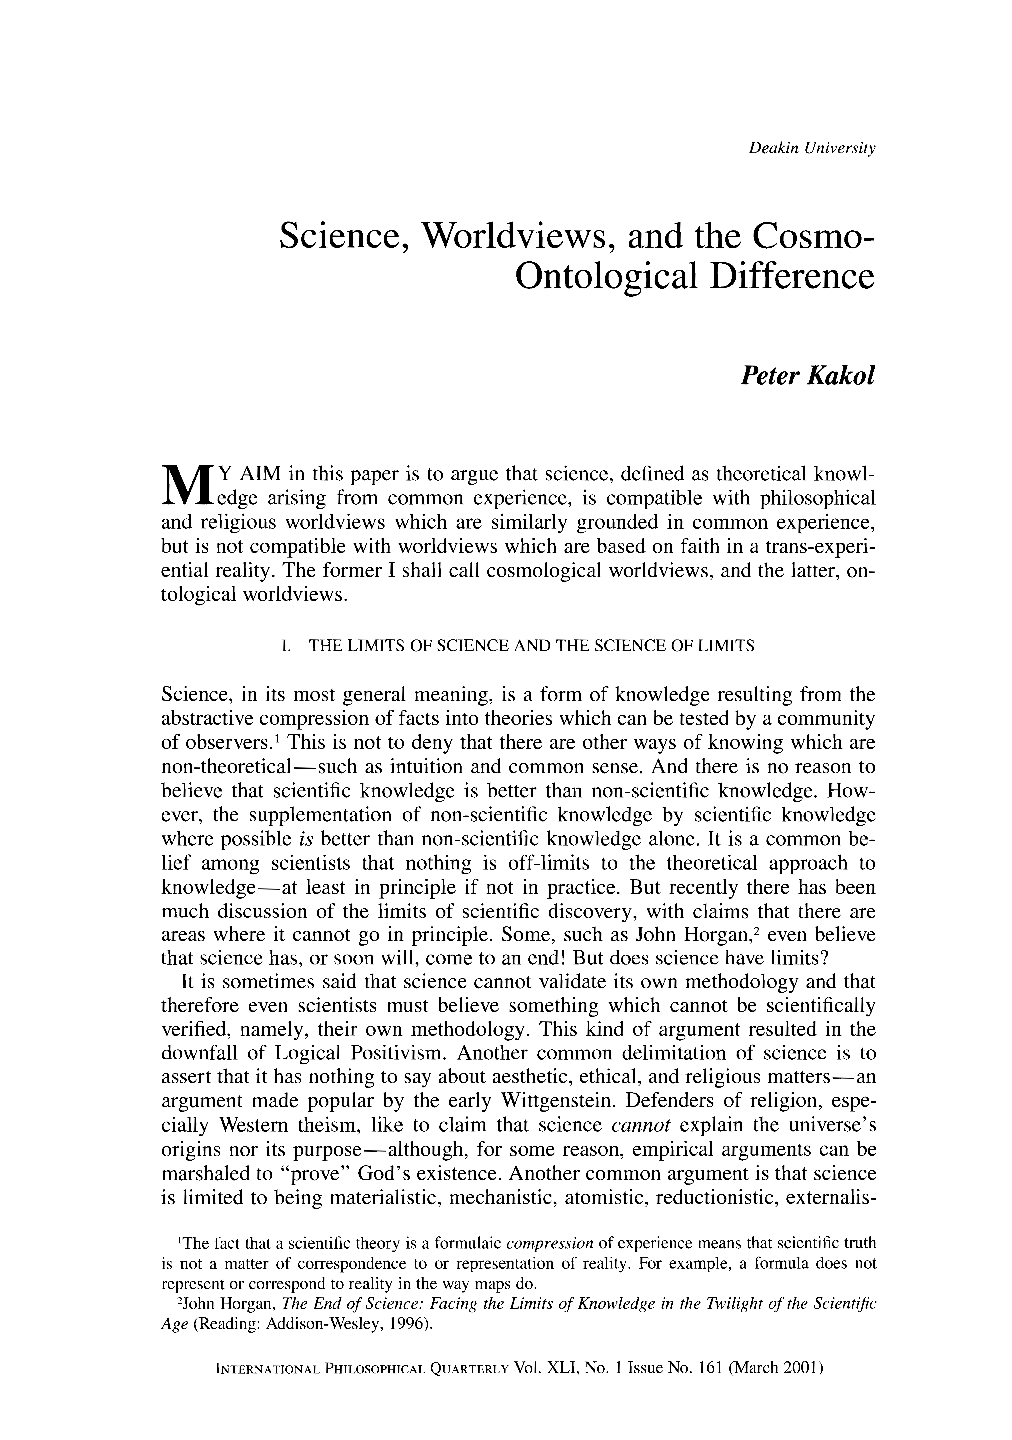 Science, World views, and the Cosmo-Ontological Difference